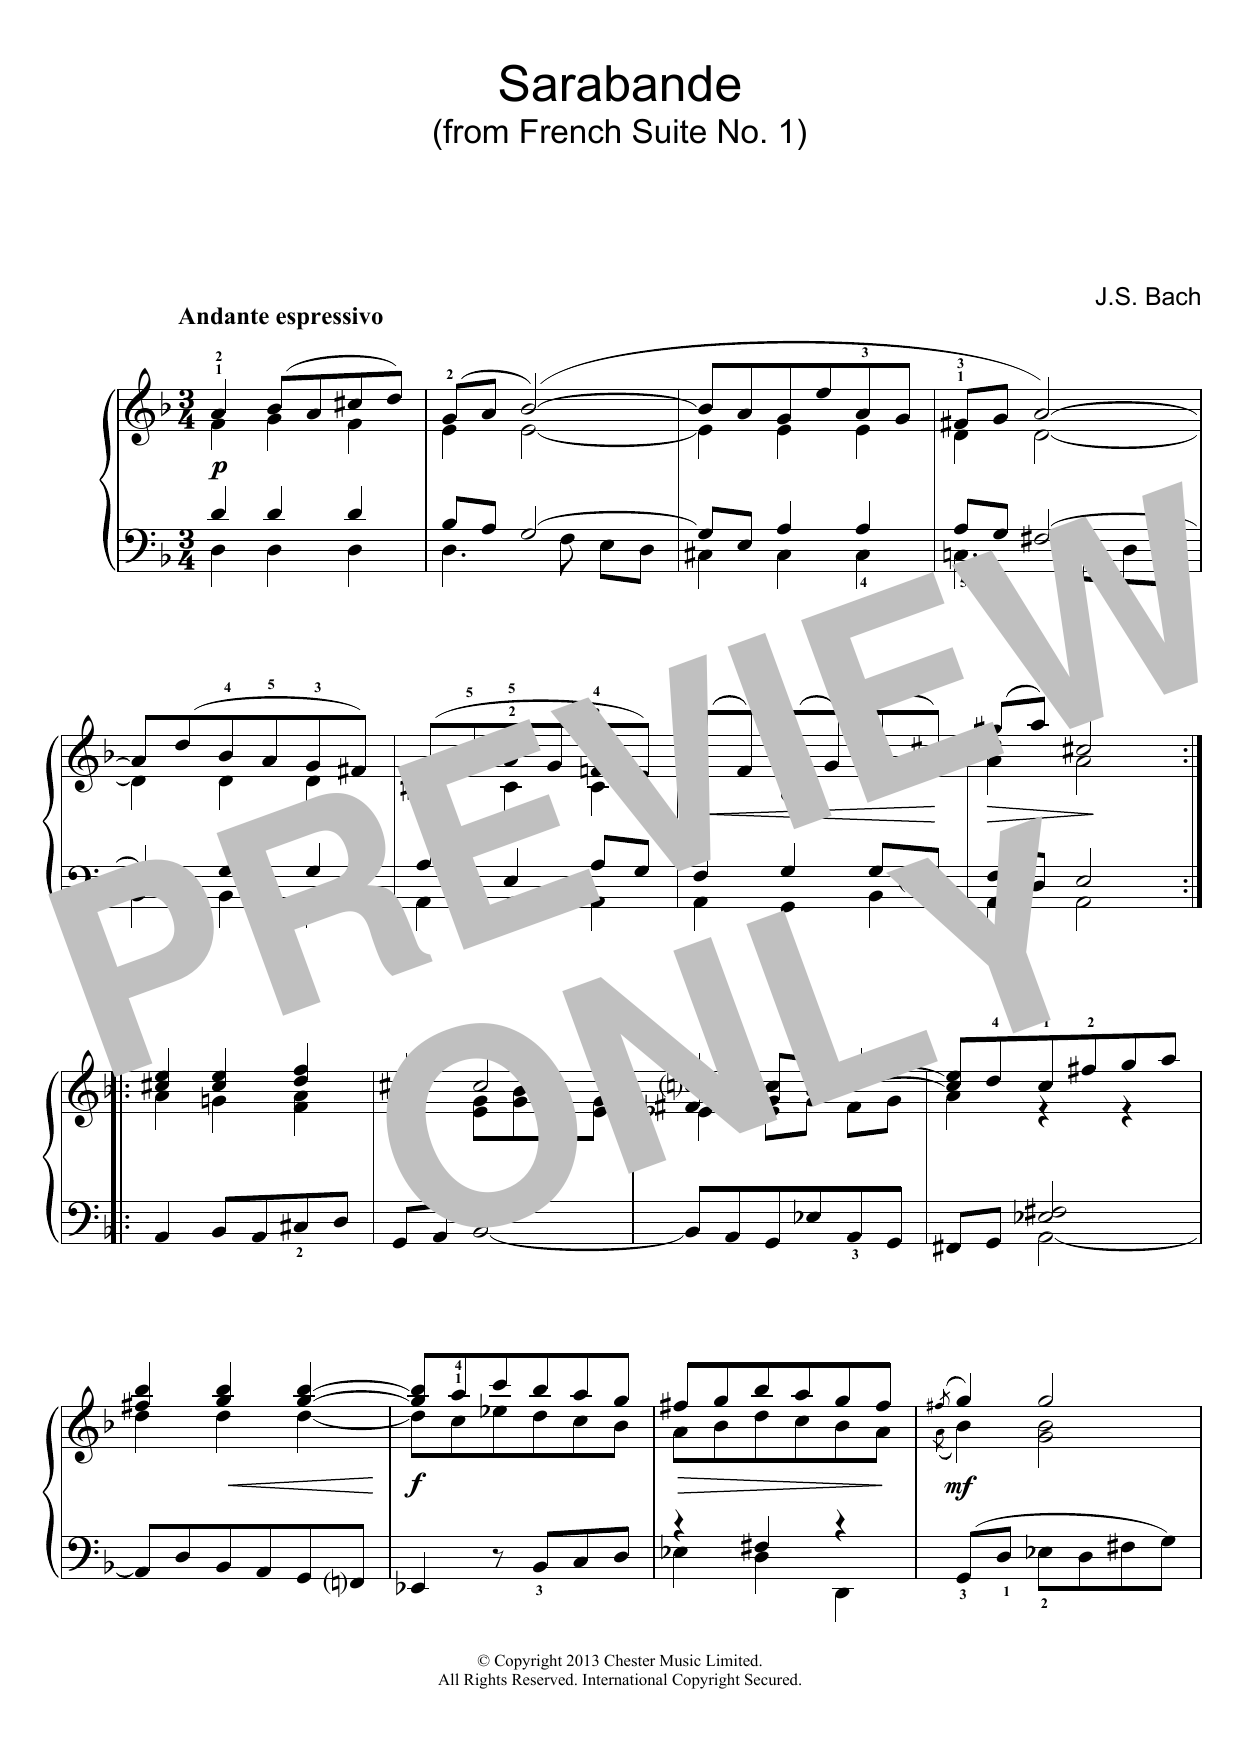 J.S. Bach Sarabande (from French Suite No. 1) sheet music preview music notes and score for Piano including 2 page(s)